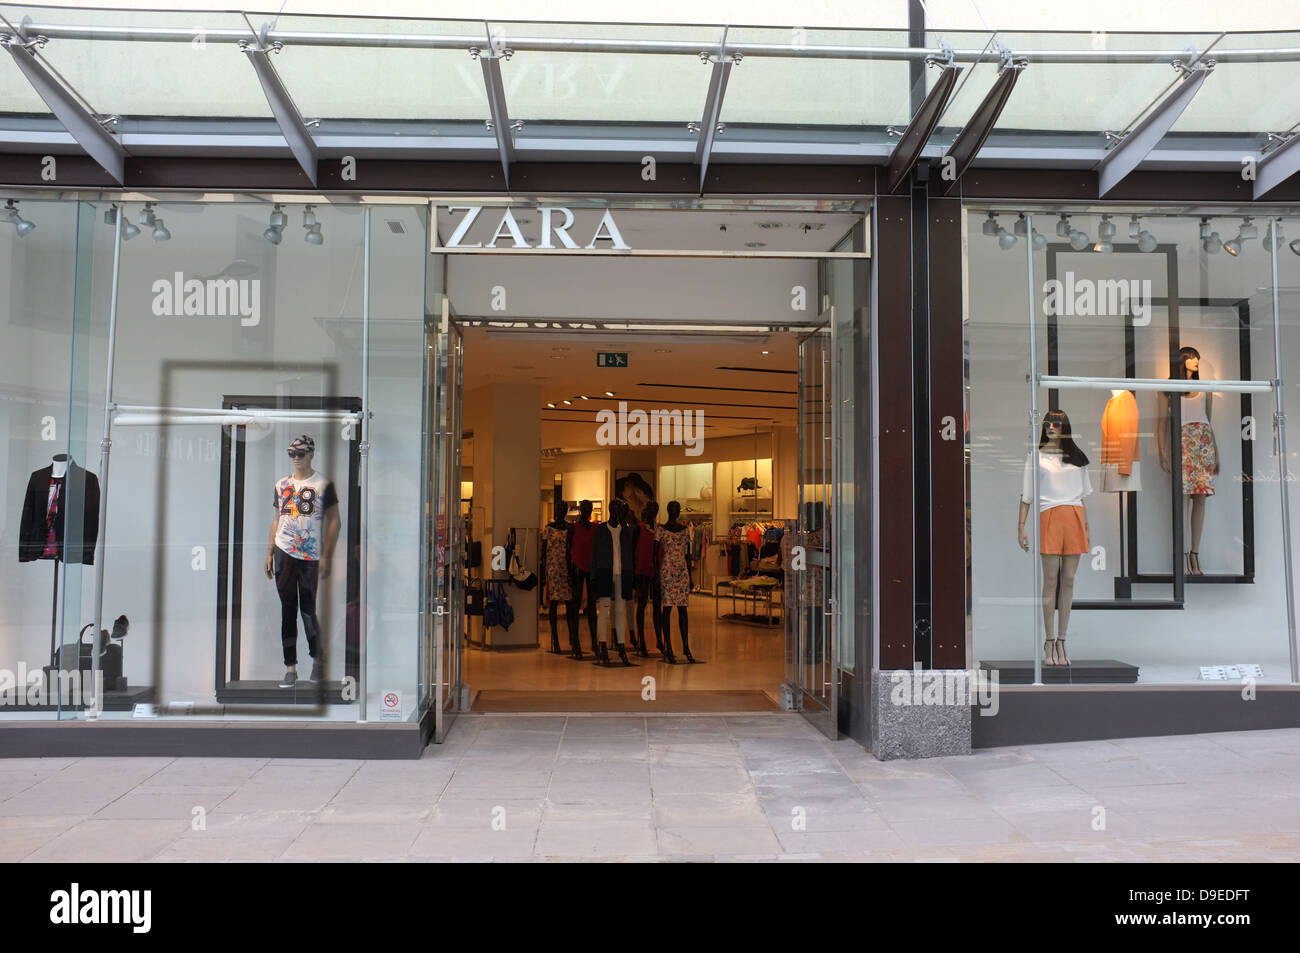 dee4f0d3 zara clothing shop in the chequers shopping centre maidstone kent uk 2013 -  Stock Image